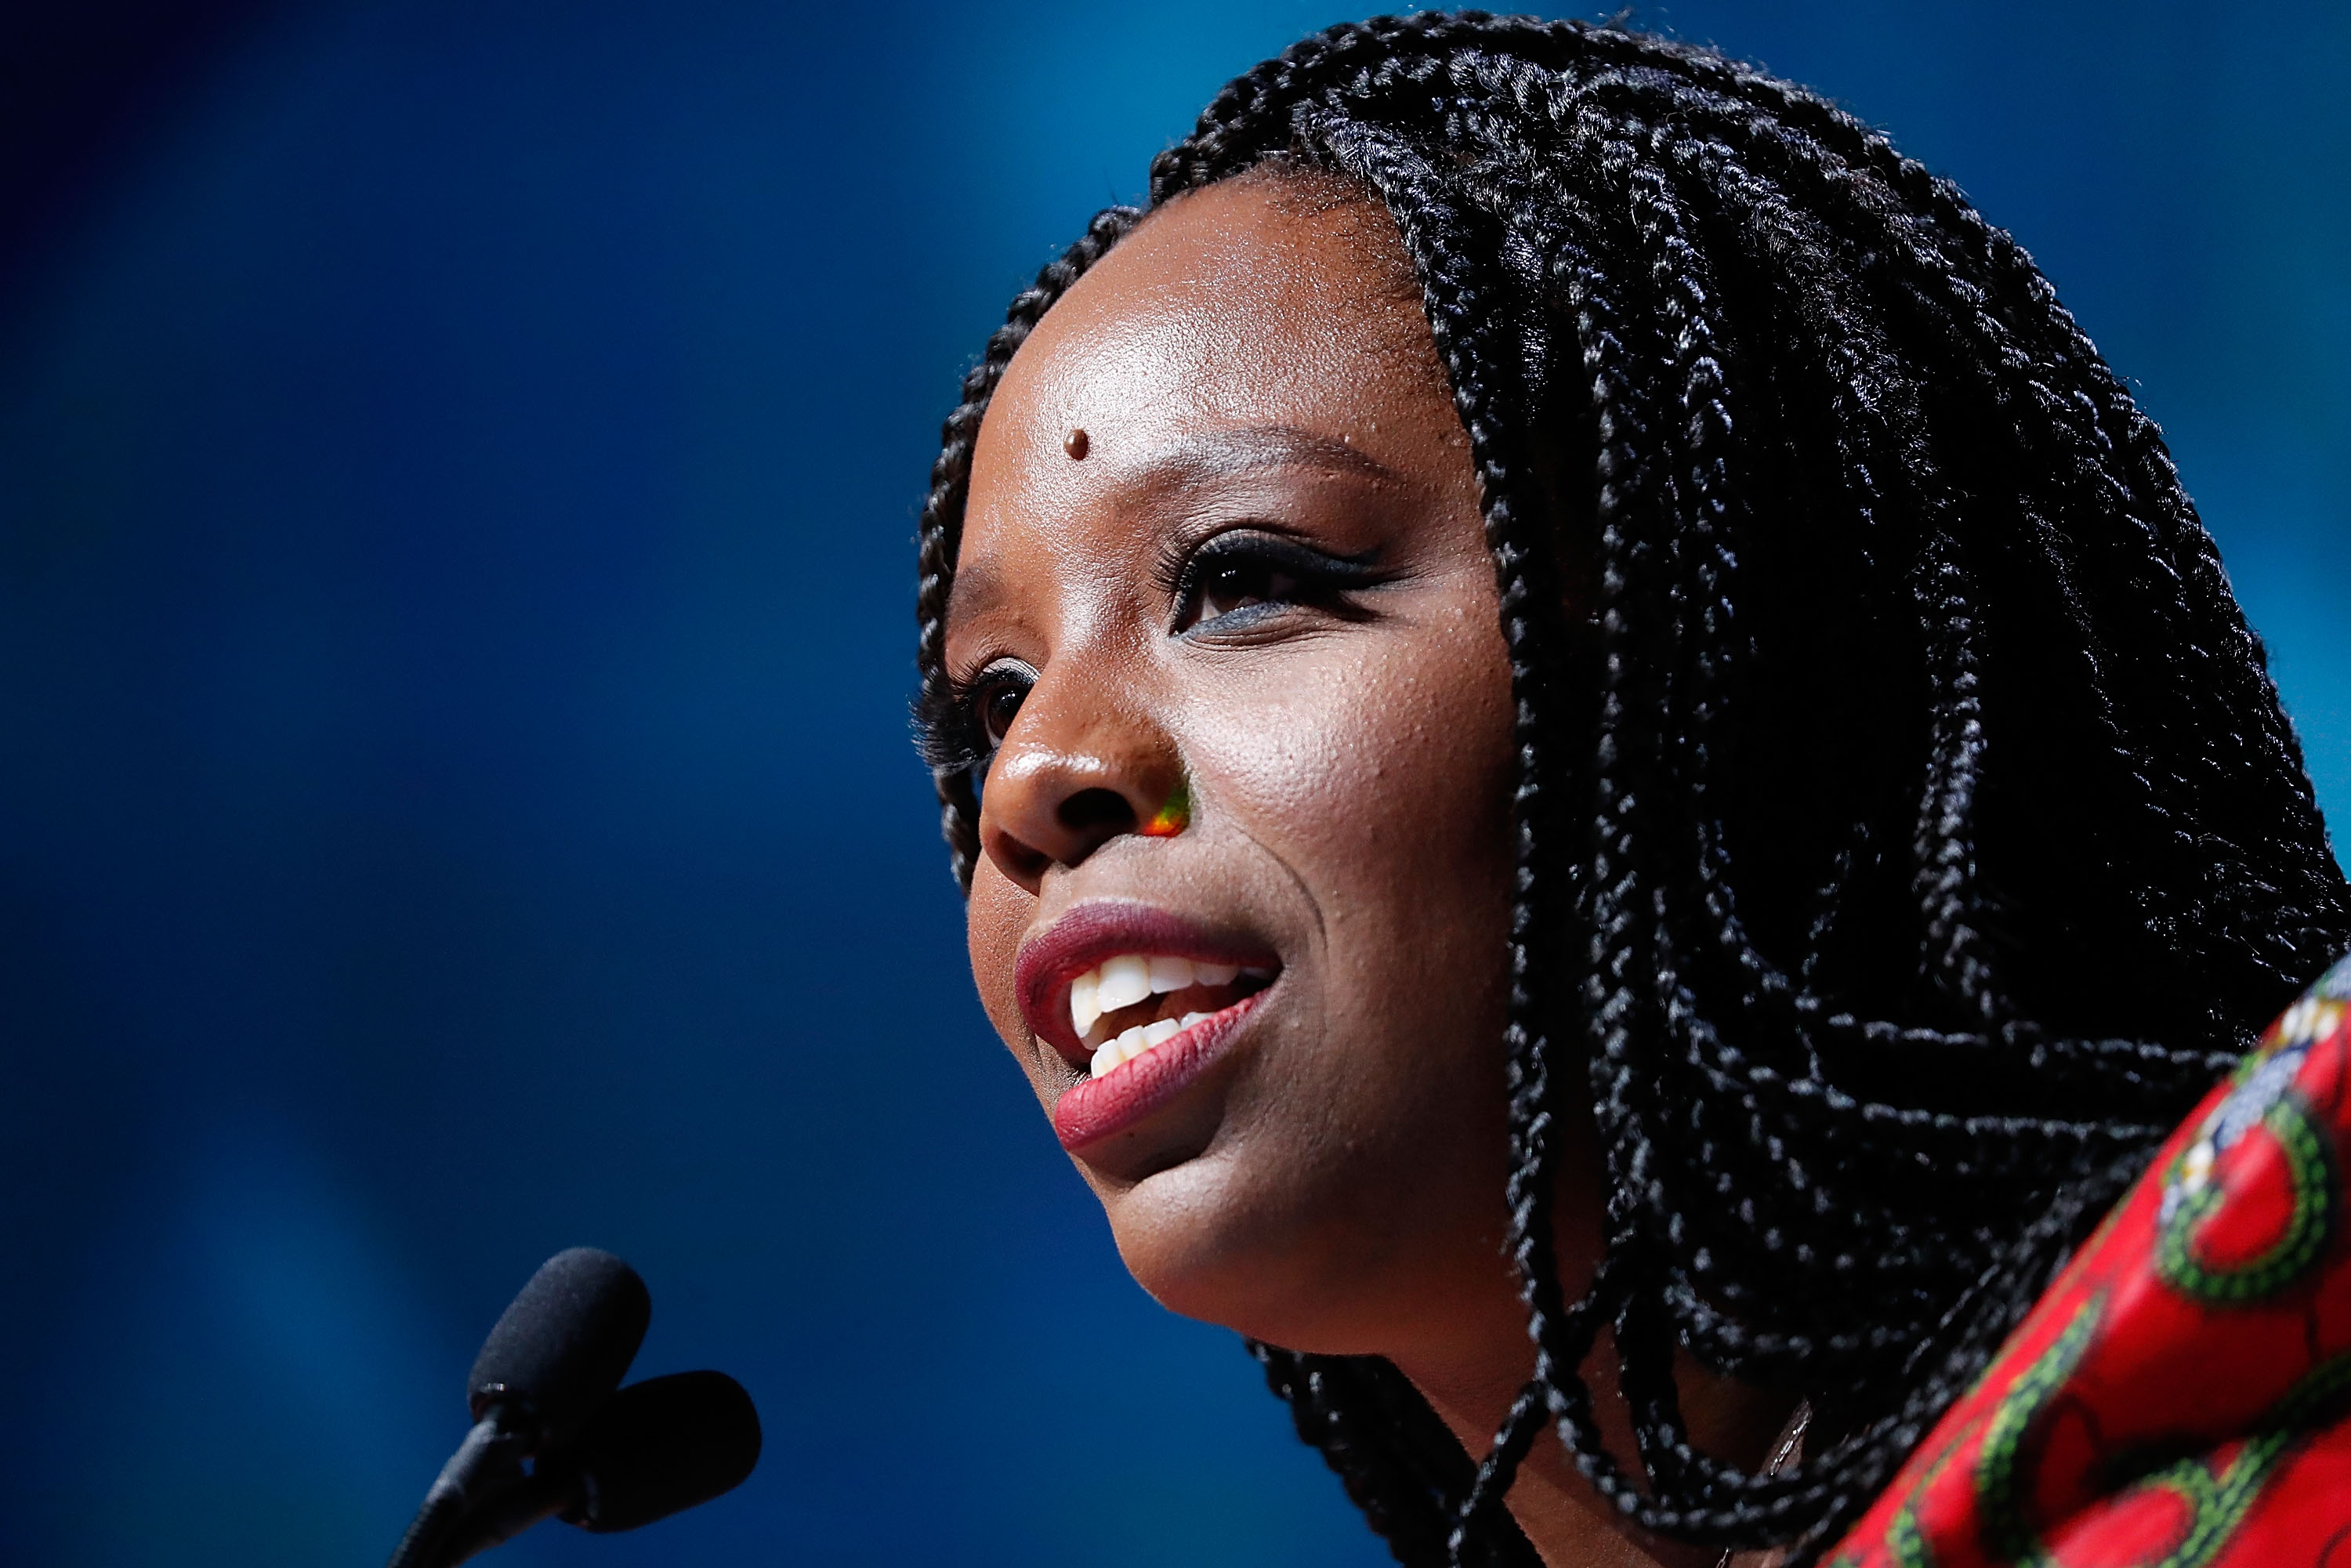 Facebook Prevents Sharing New York Post Story on Black Lives Matter Founder Patrisse Cullors' Real Estate